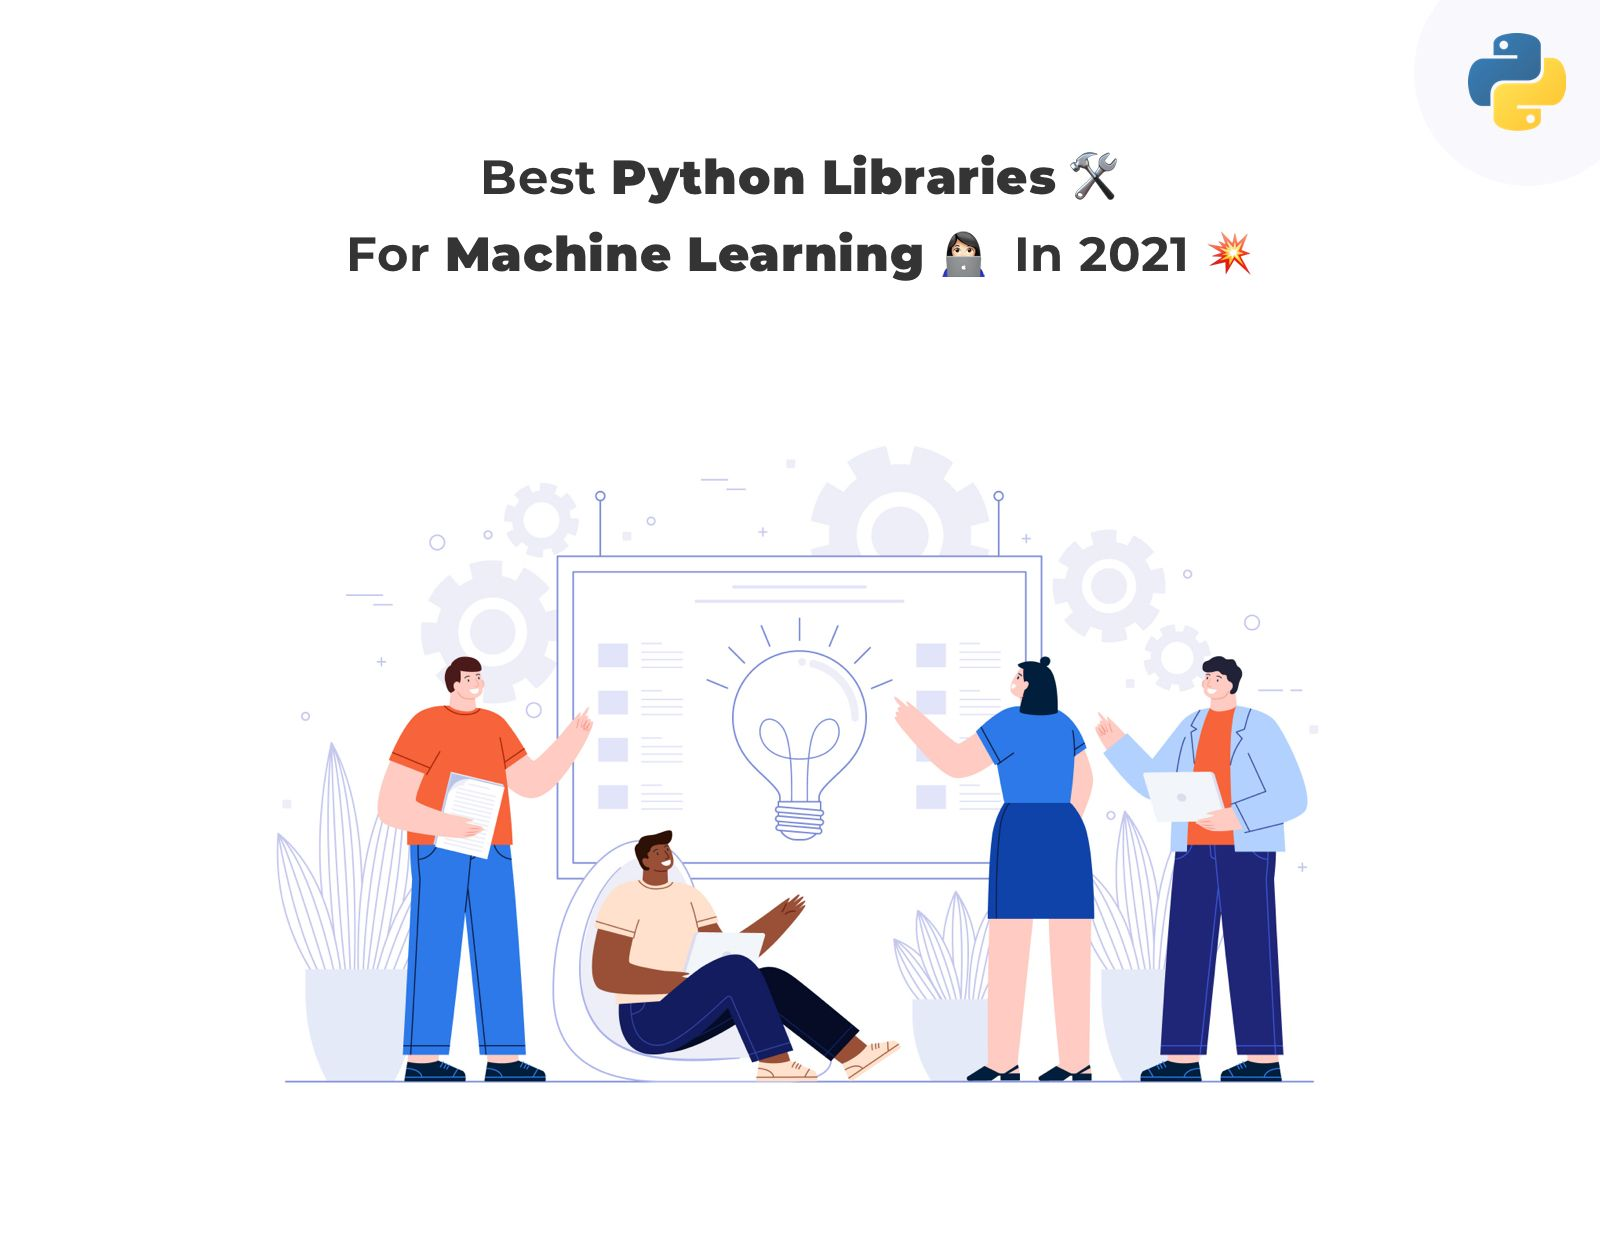 8 Best Python Libraries  For Machine Learning in 2021